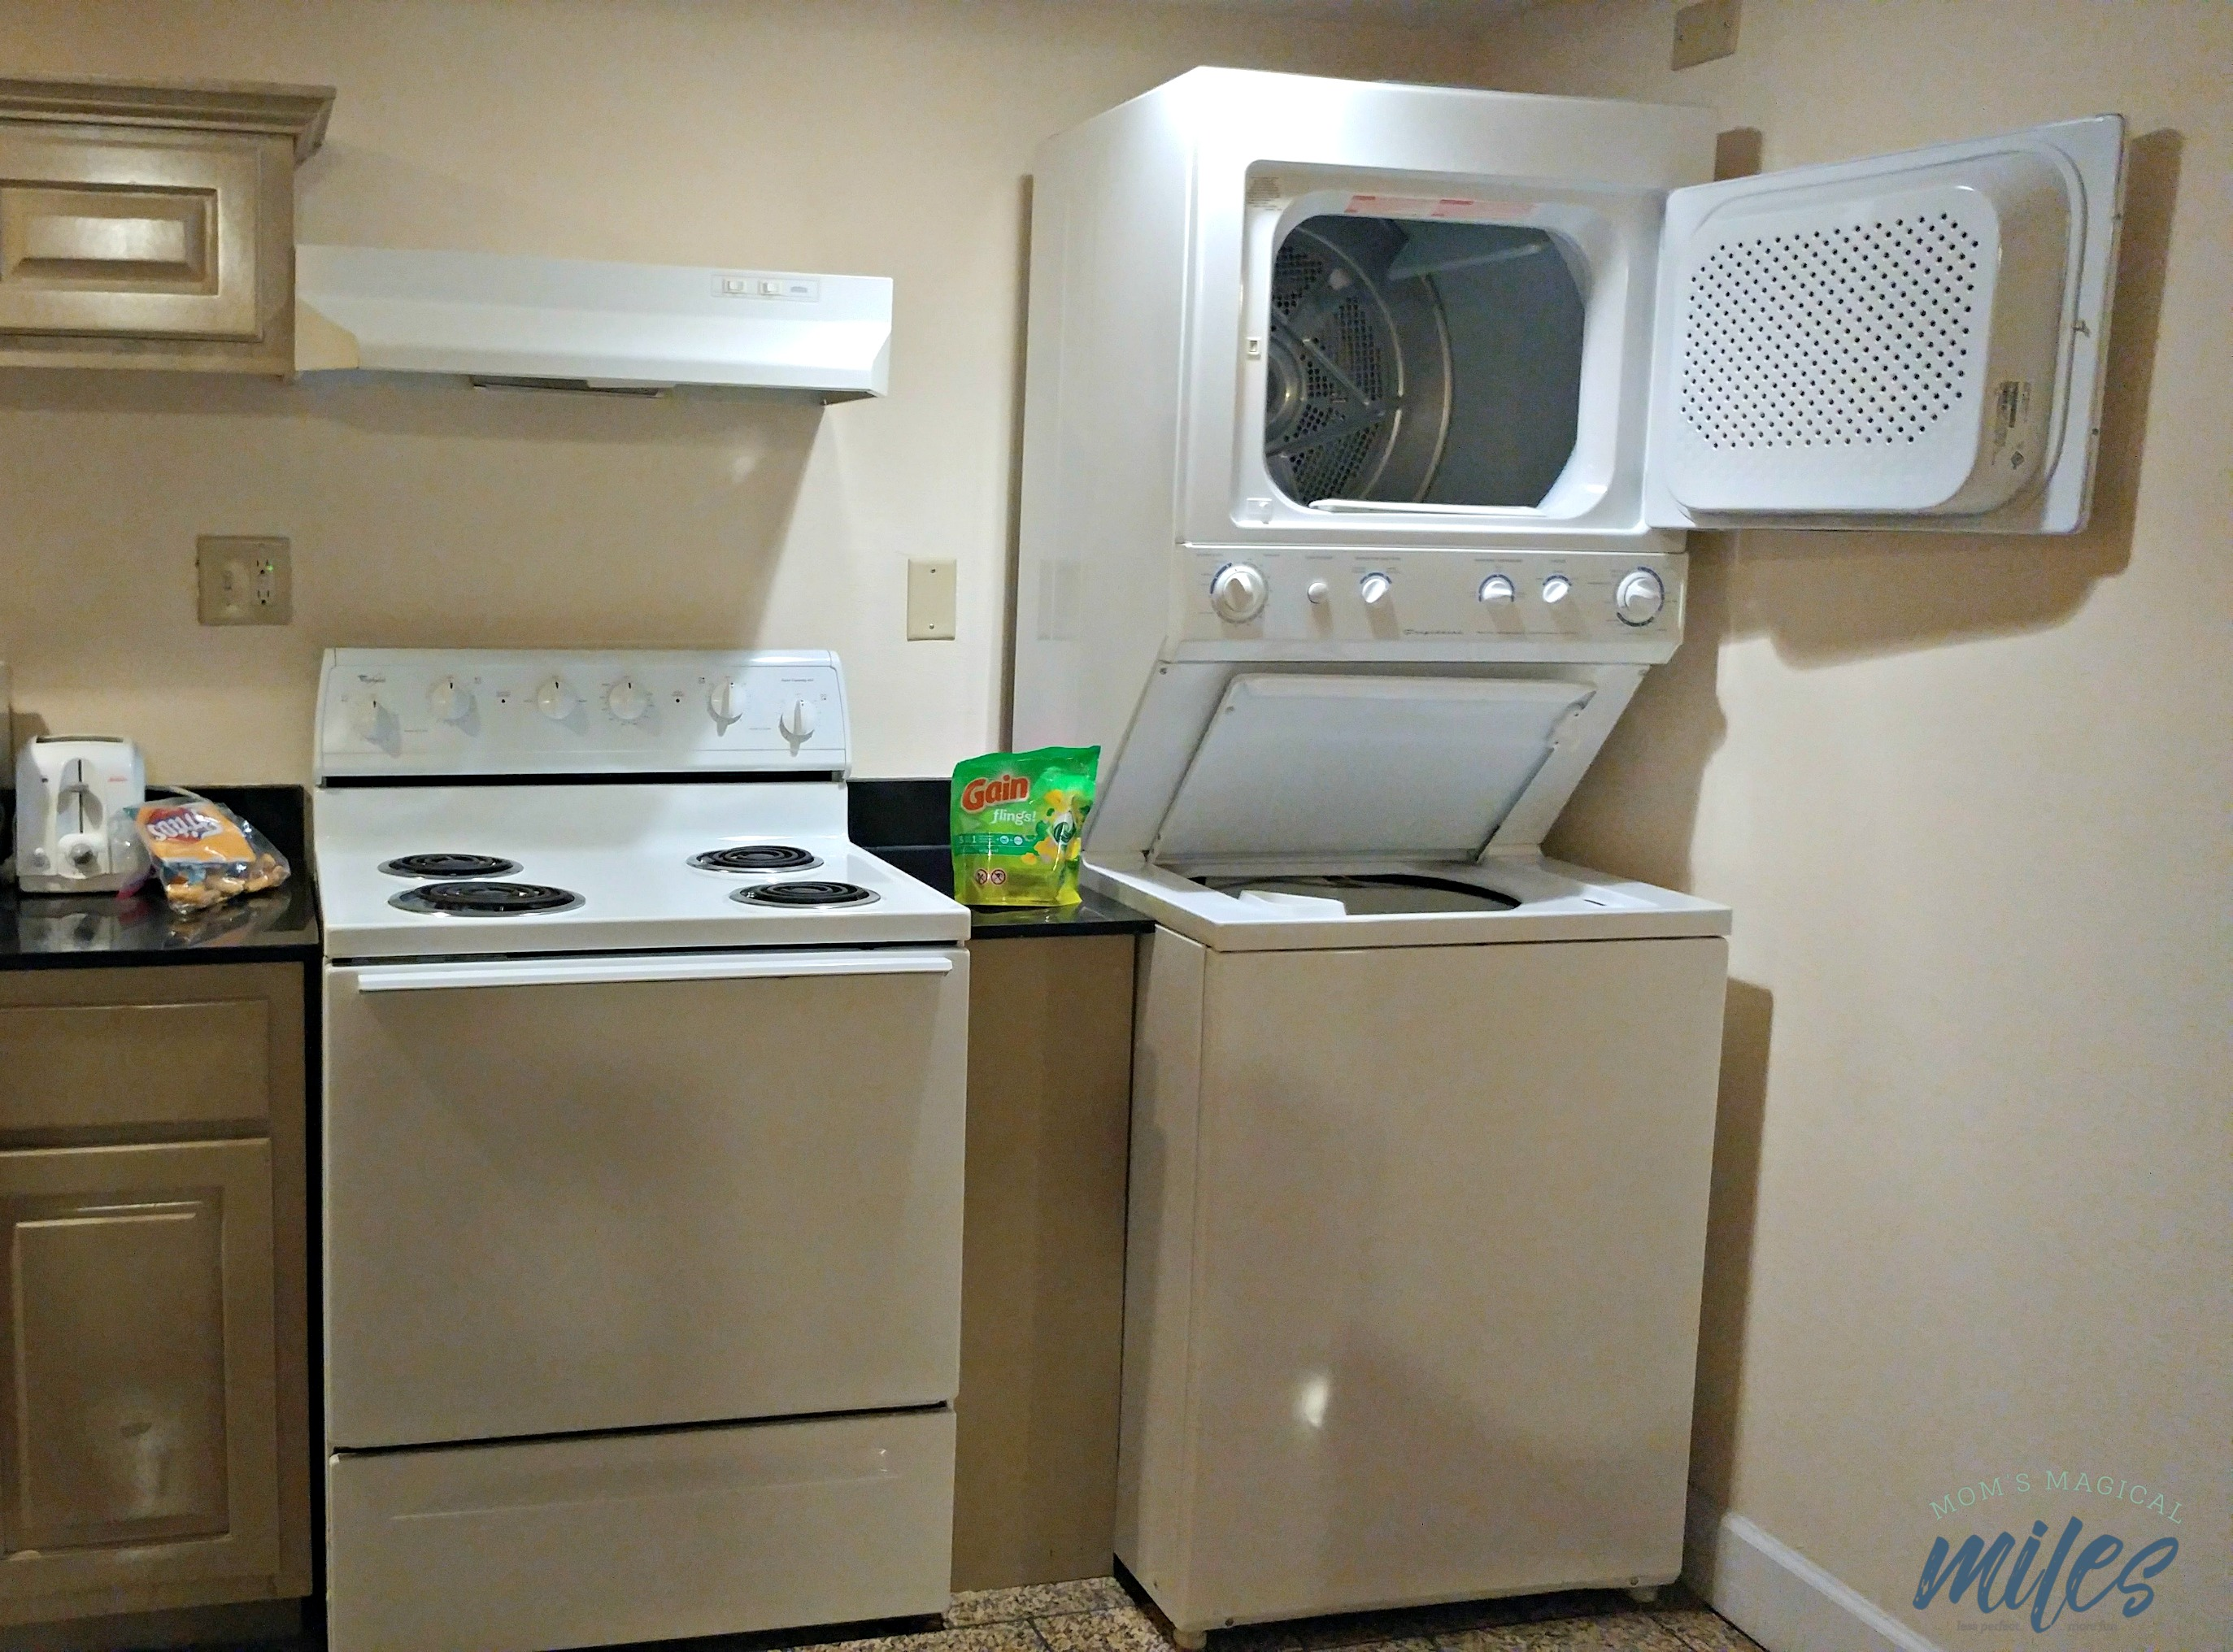 The in-room washer/dryer at the Cumberland Inn in St. Mary's was an amazing feature.